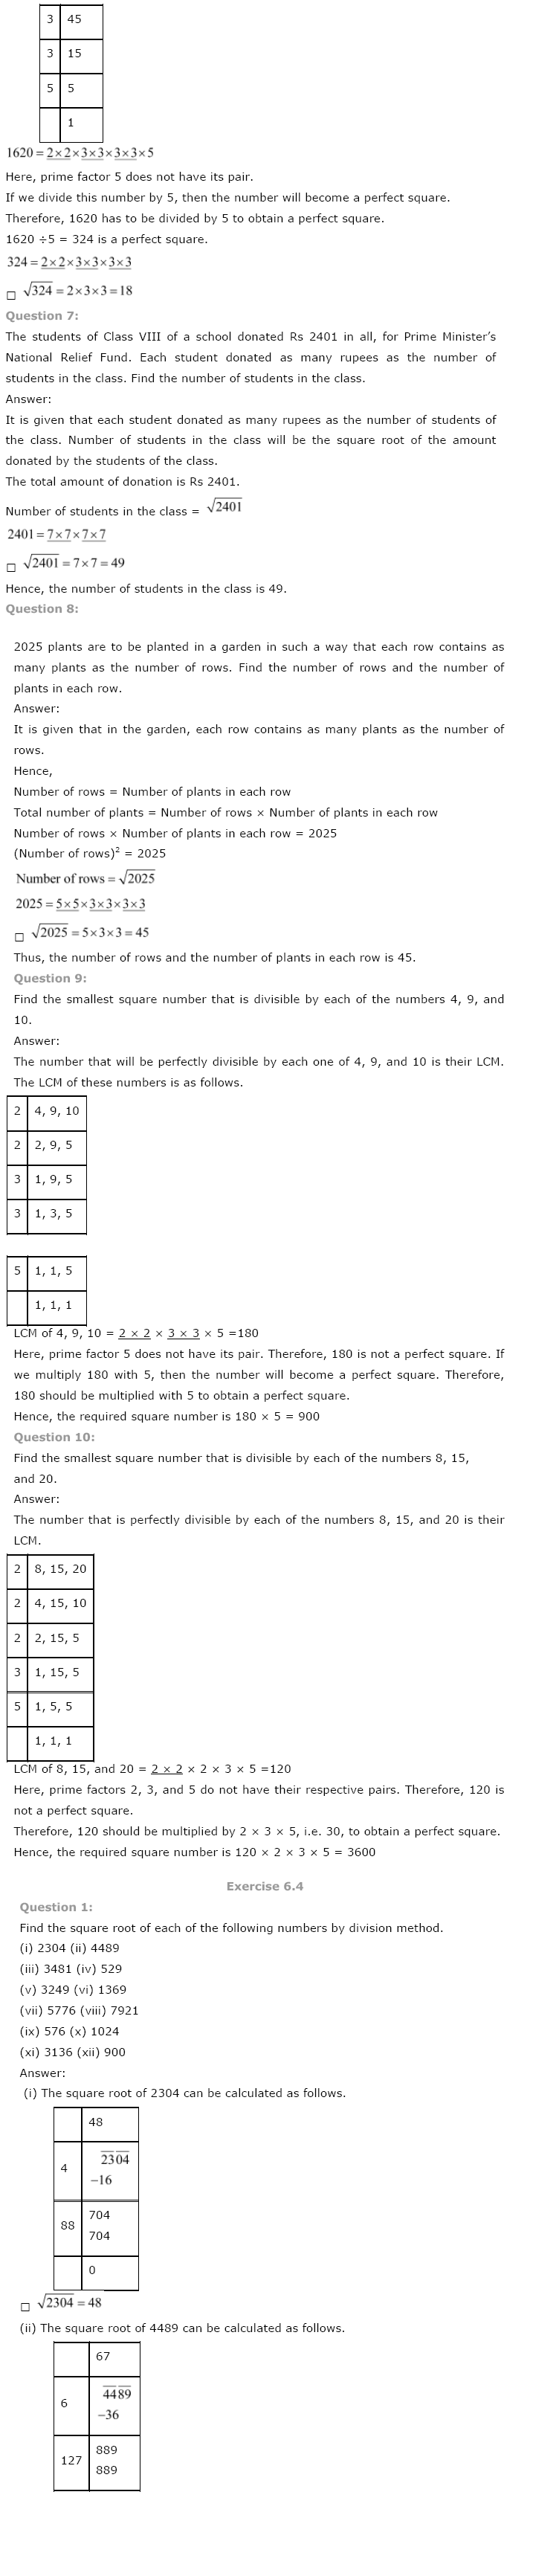 NCERT Solutions For Class 8 Maths Ch 6 Squares And Square Roots PDF Download